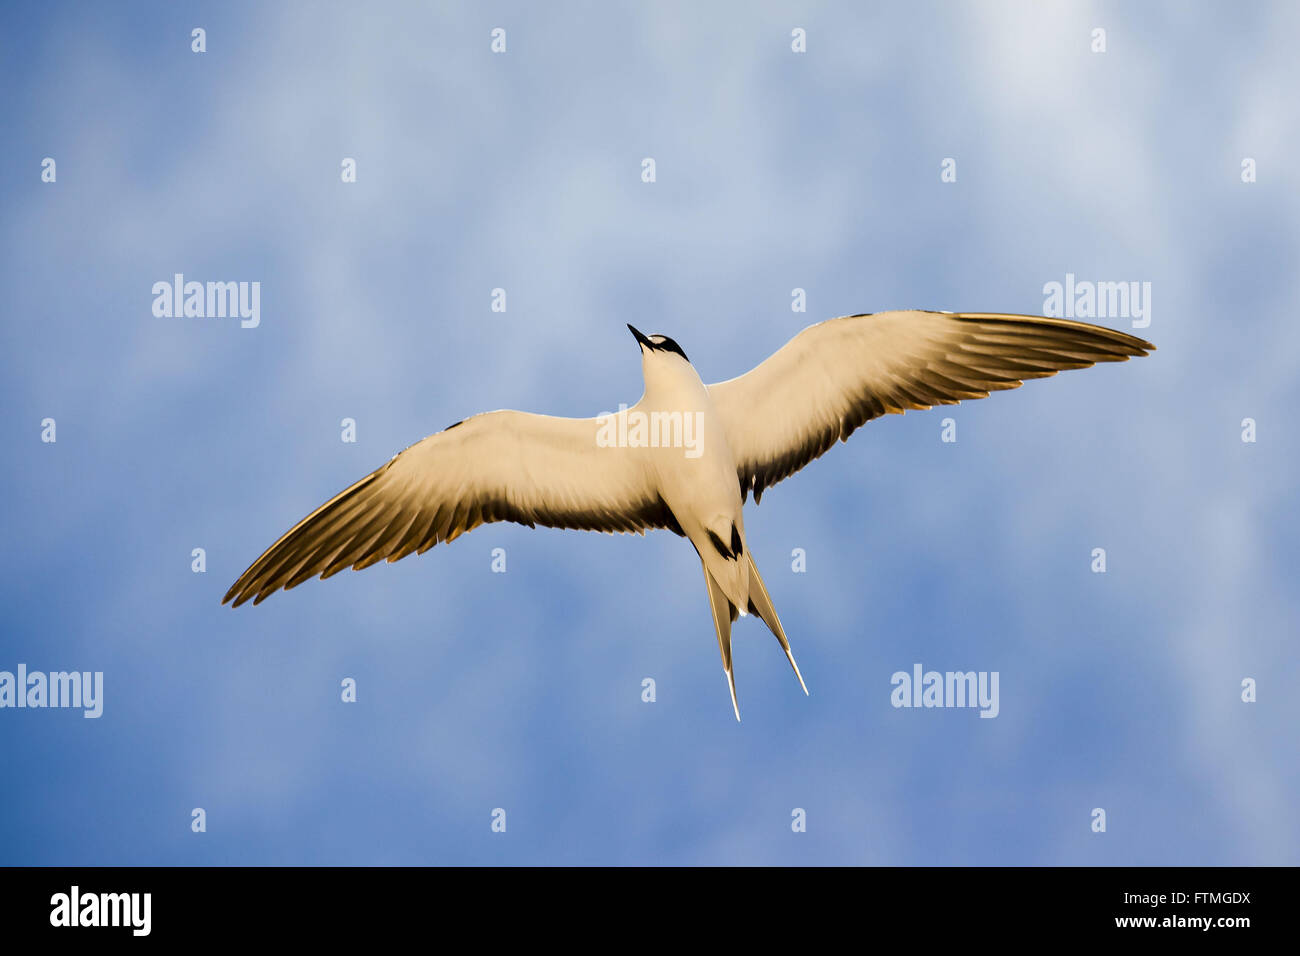 Grazina Bird flying at Trindade Island in the middle of the Atlantic Ocean - Stock Image